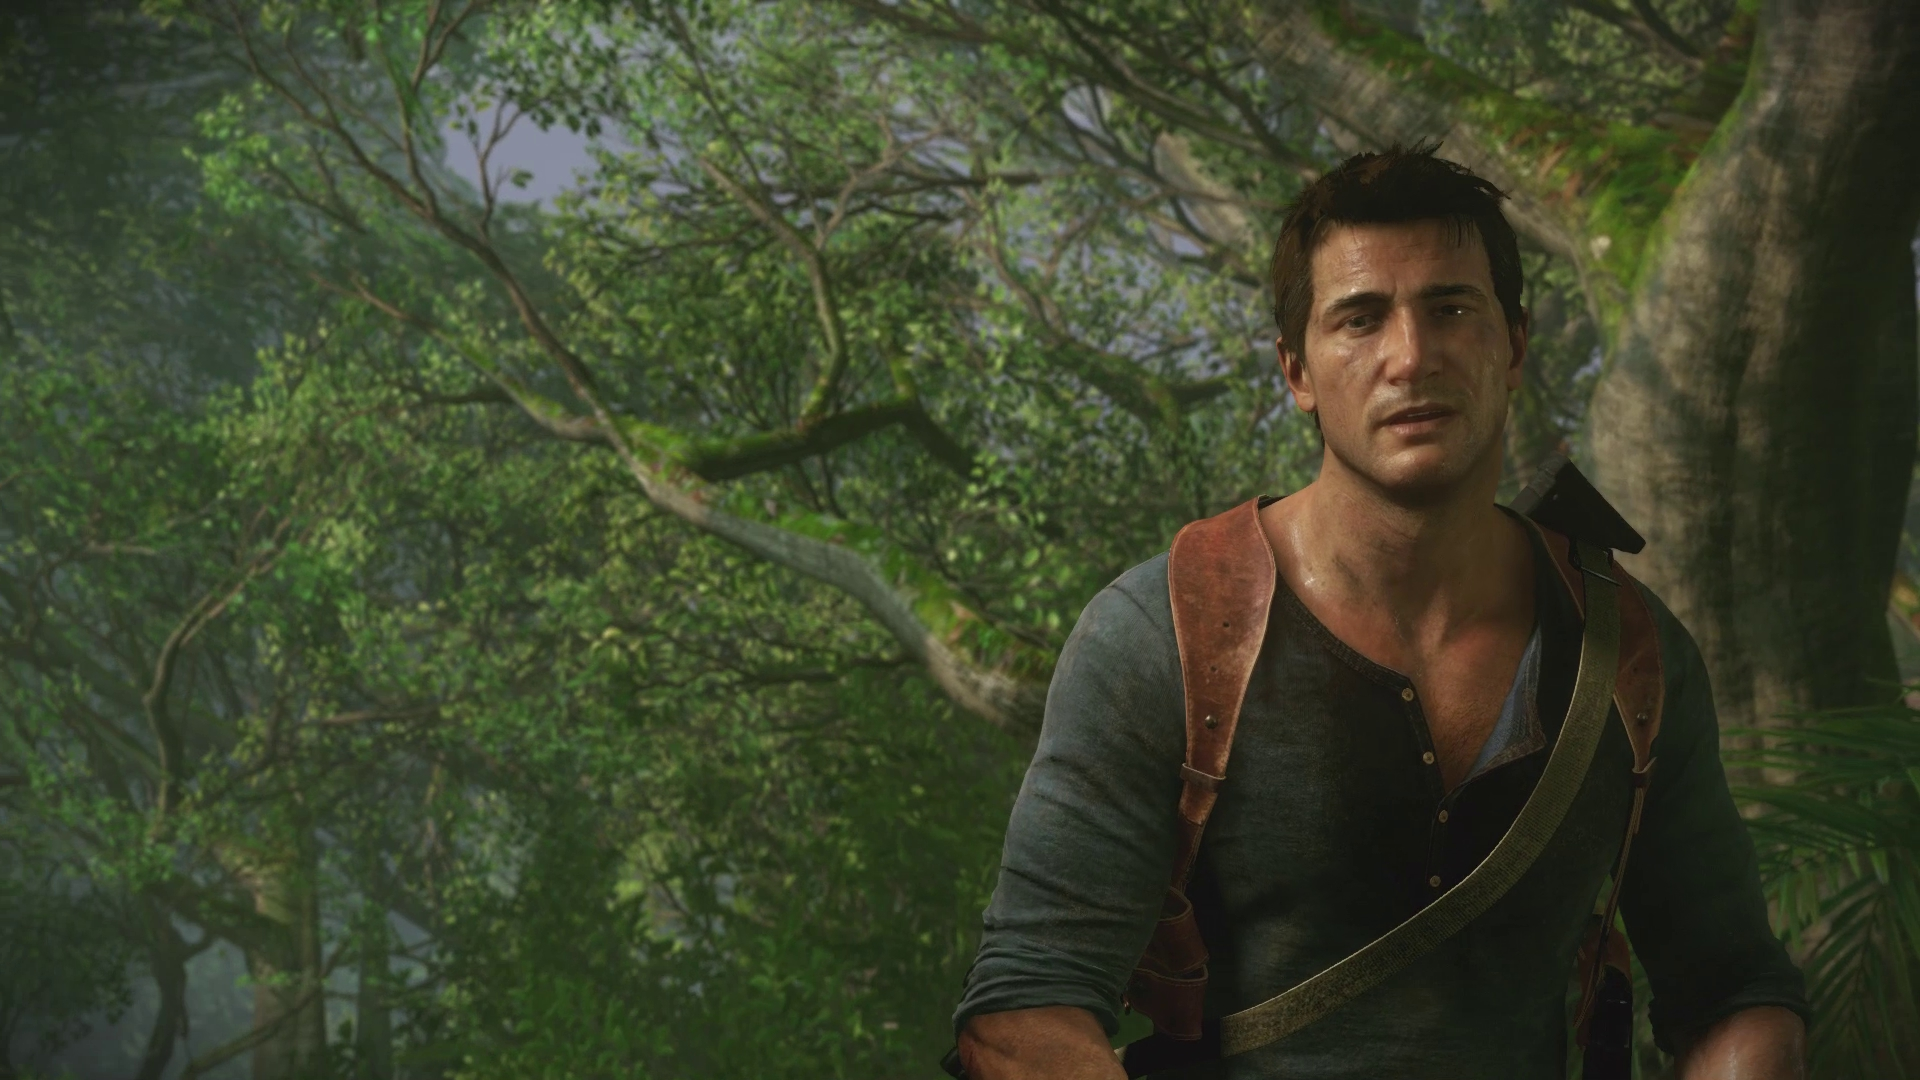 Uncharted 4 Trailer Asks if It Was All Worth It